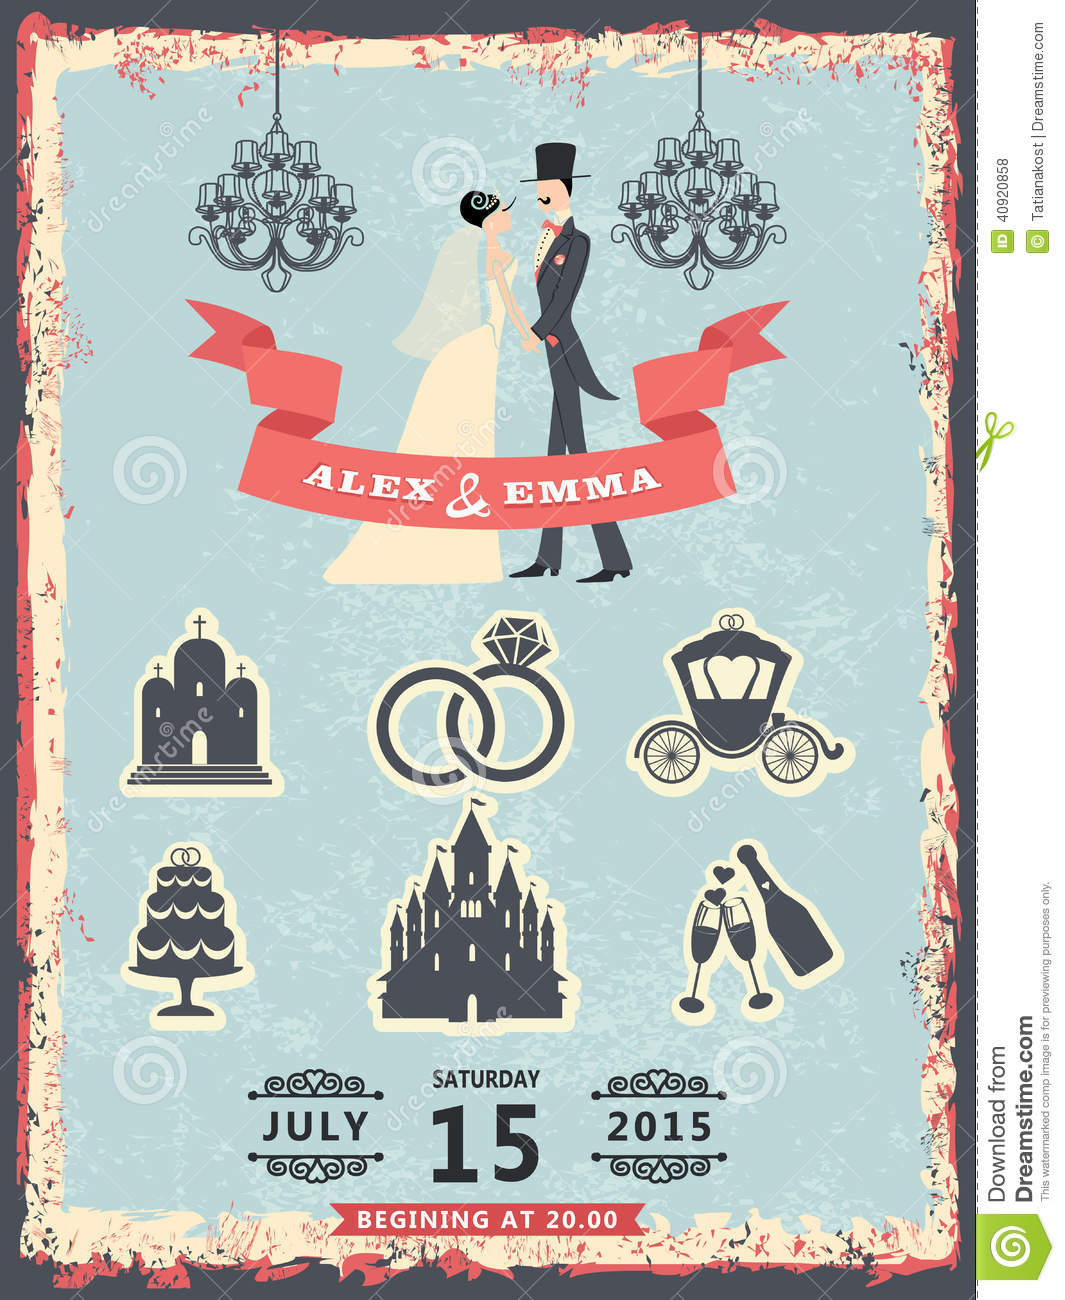 Vintage Invitation With Groom, Bride And Wedding Icons ...